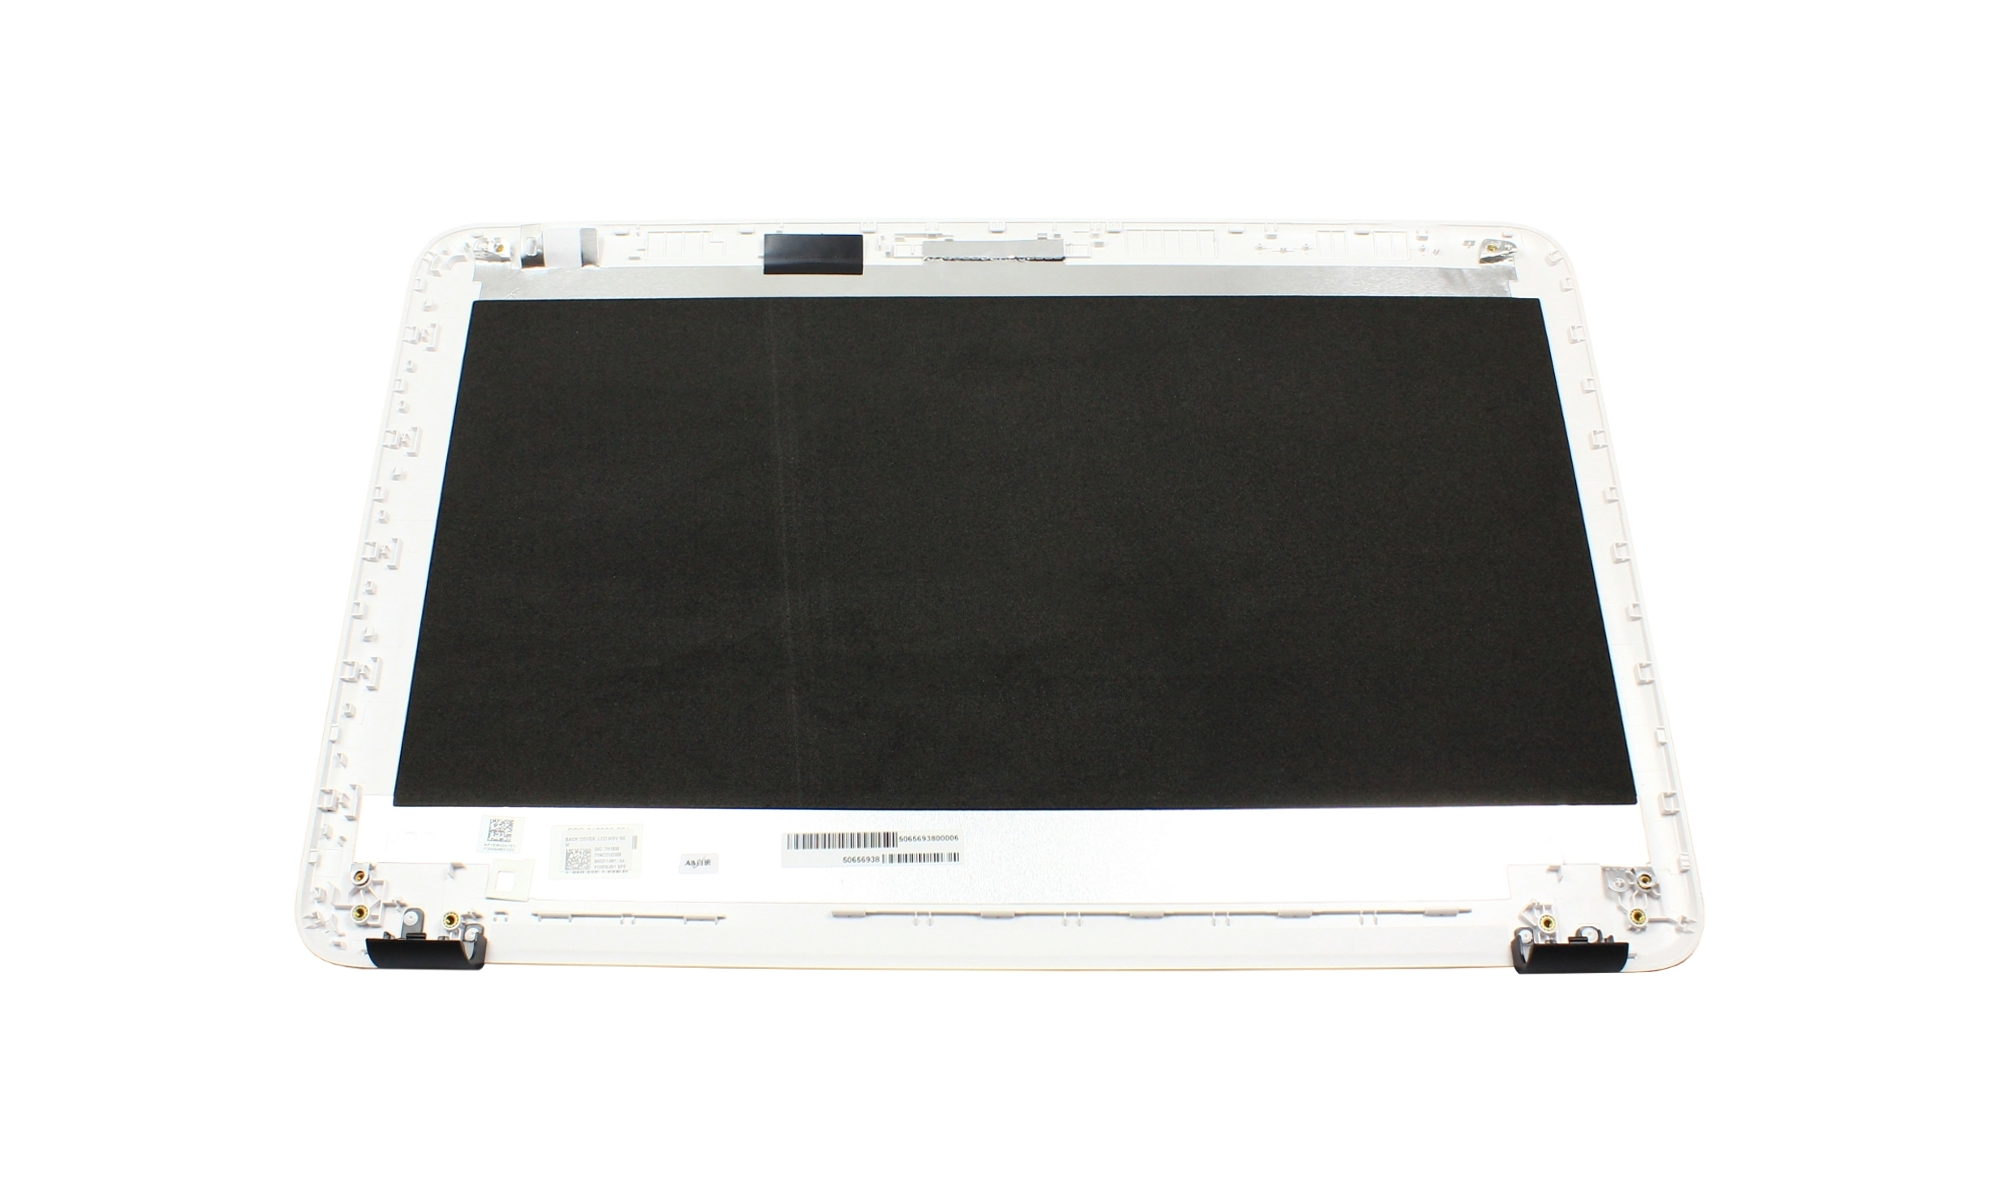 Capac display HP 255 G4, alb